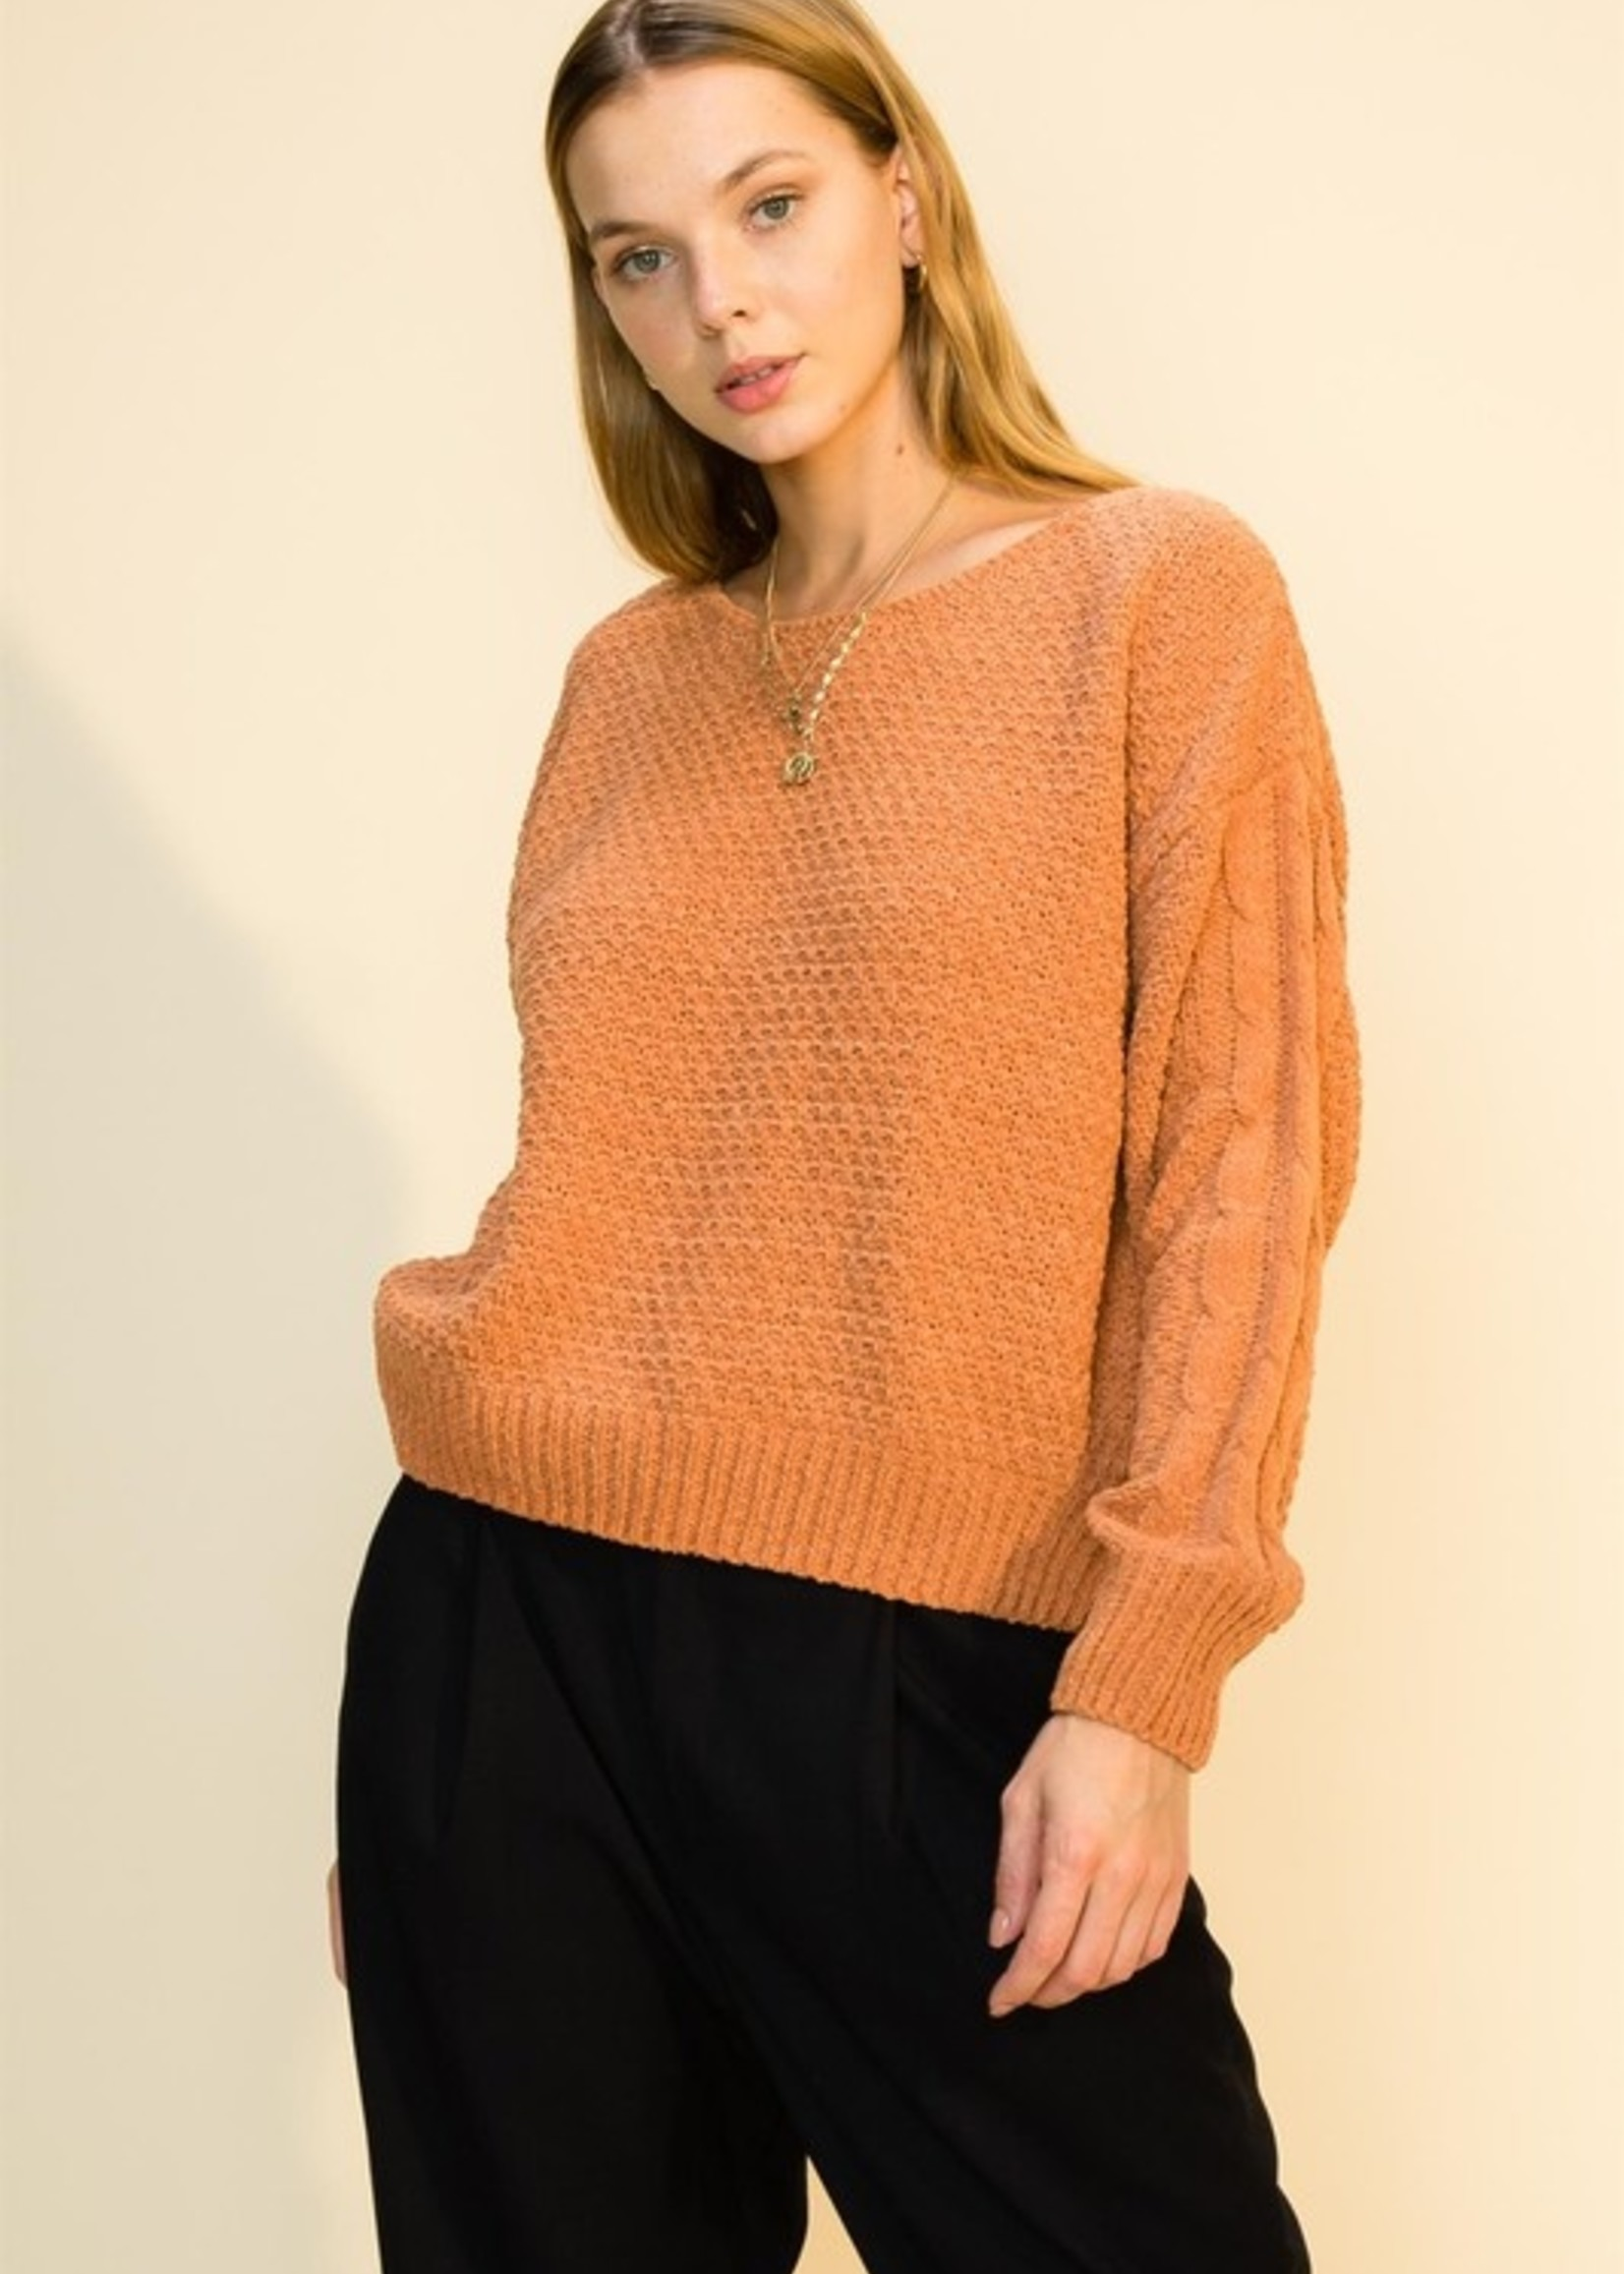 Pullover Knit Sweater - Camel